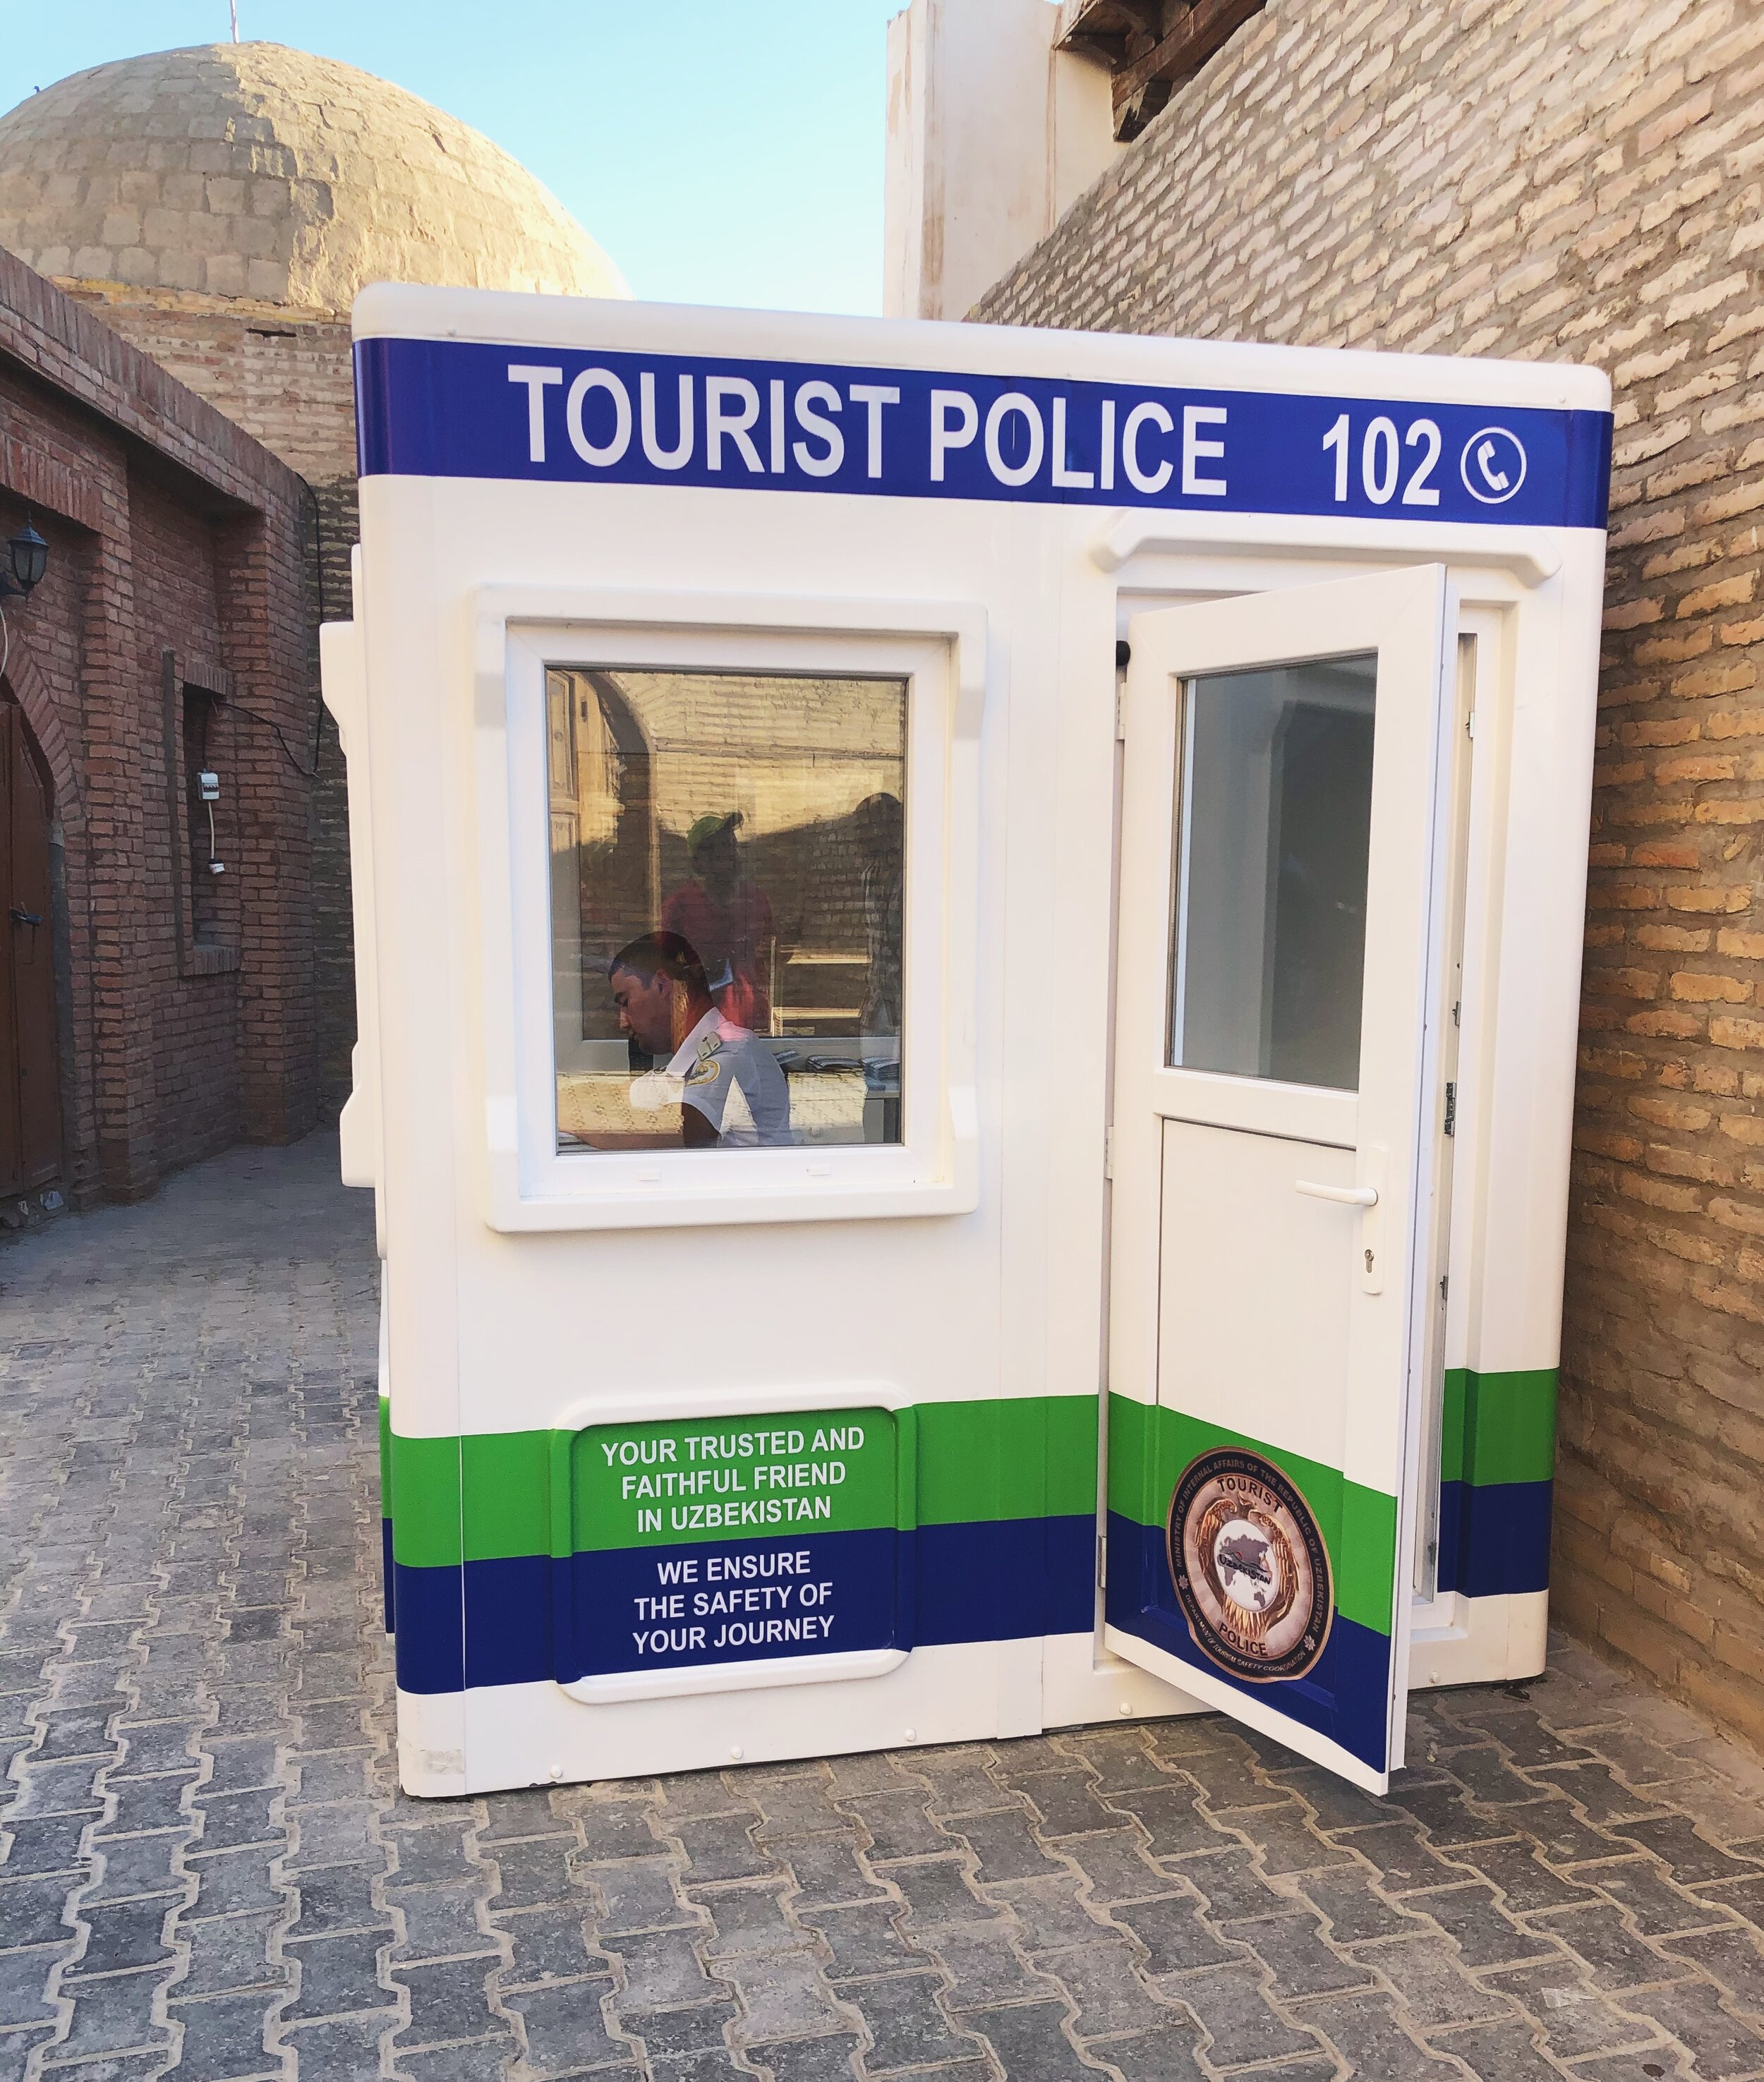 Tourists police stands are common in Uzbekistan.